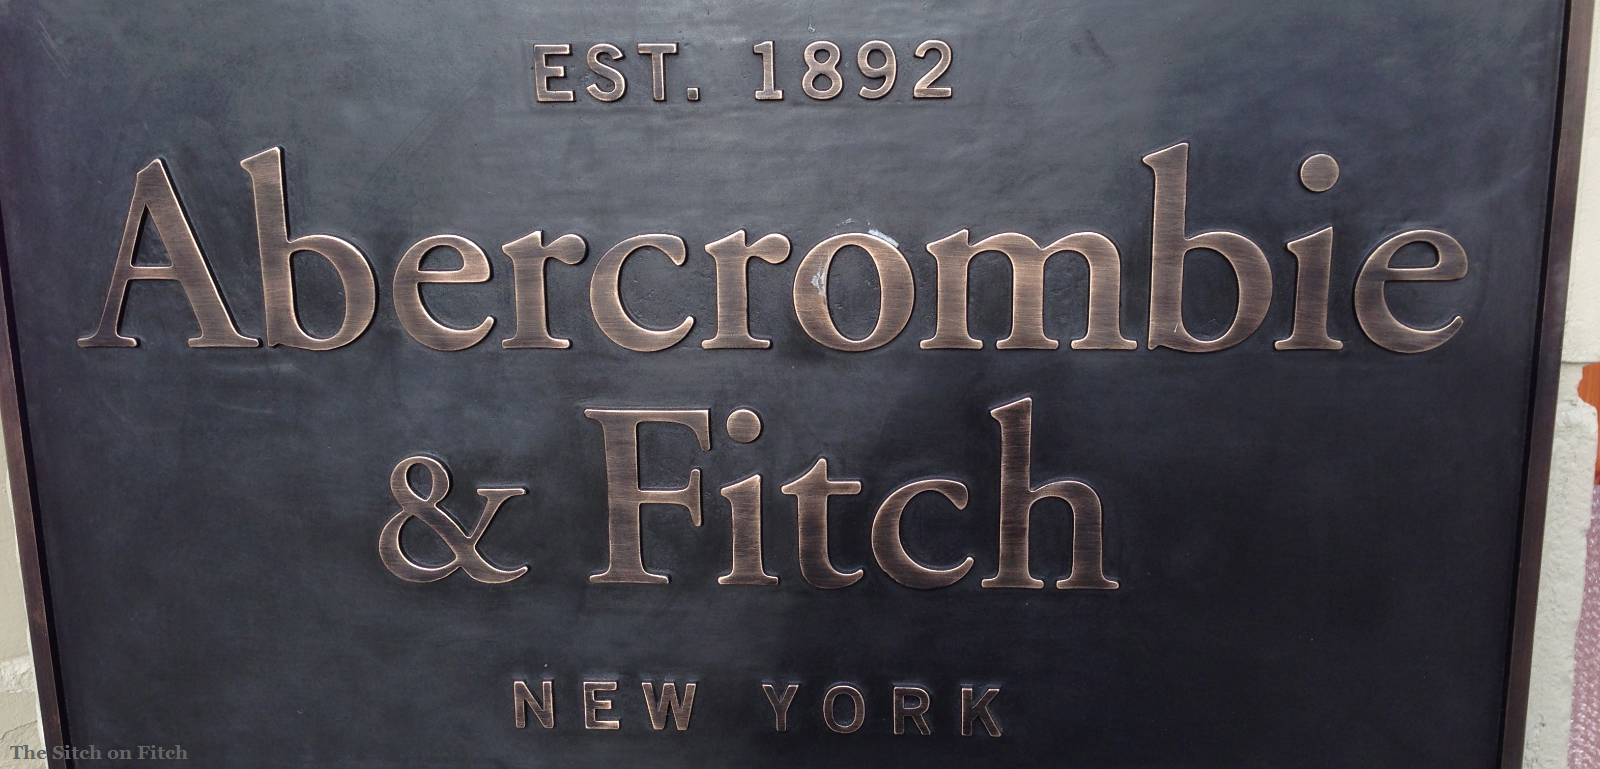 Abercrombie Wallpaper - WallpaperSafari